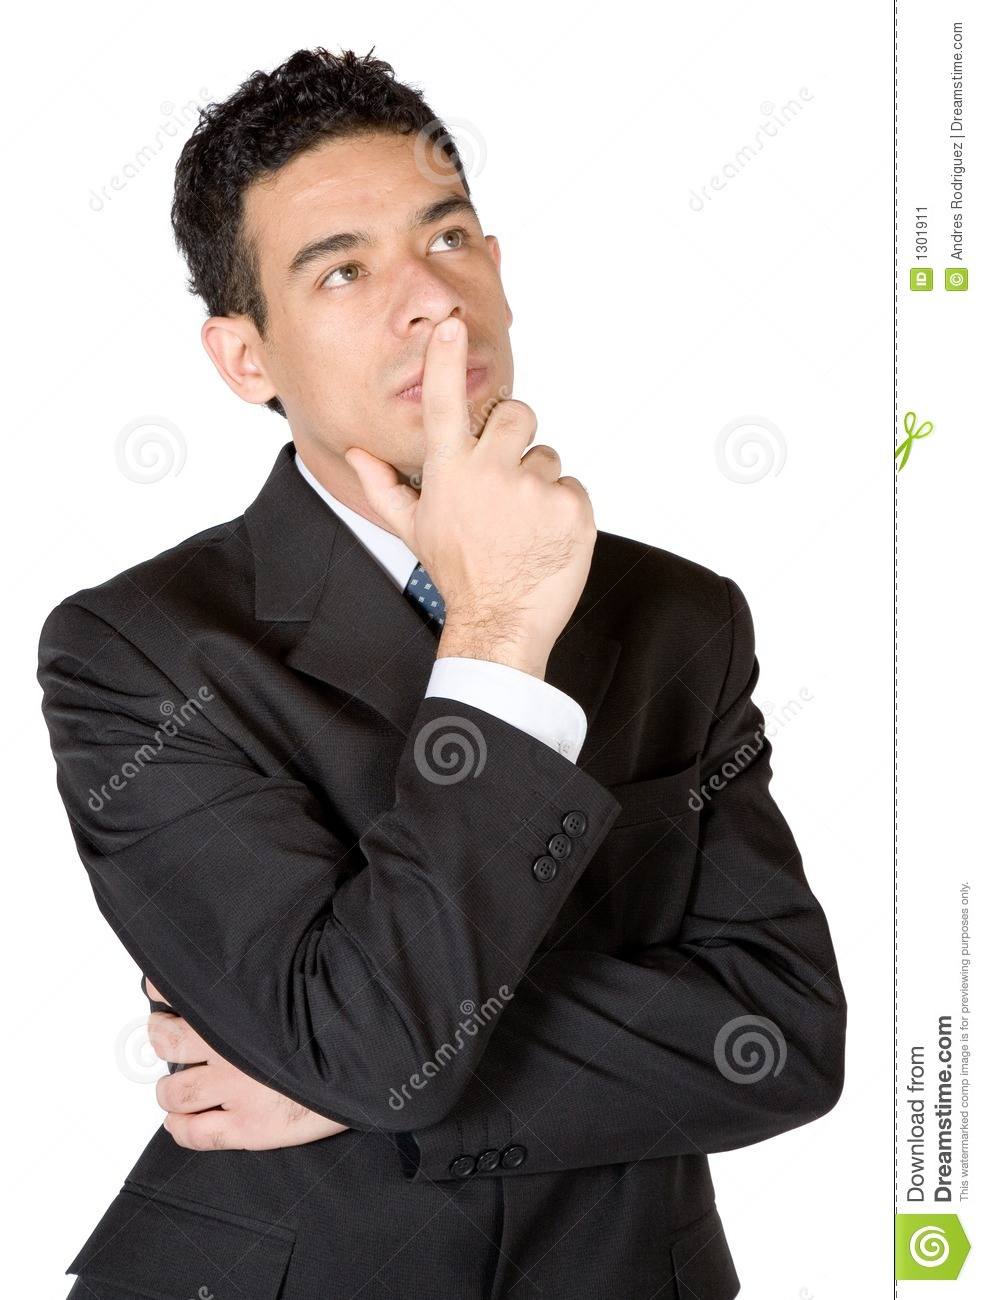 Business Man Deep In Thought Stock Image - Image: 1301911